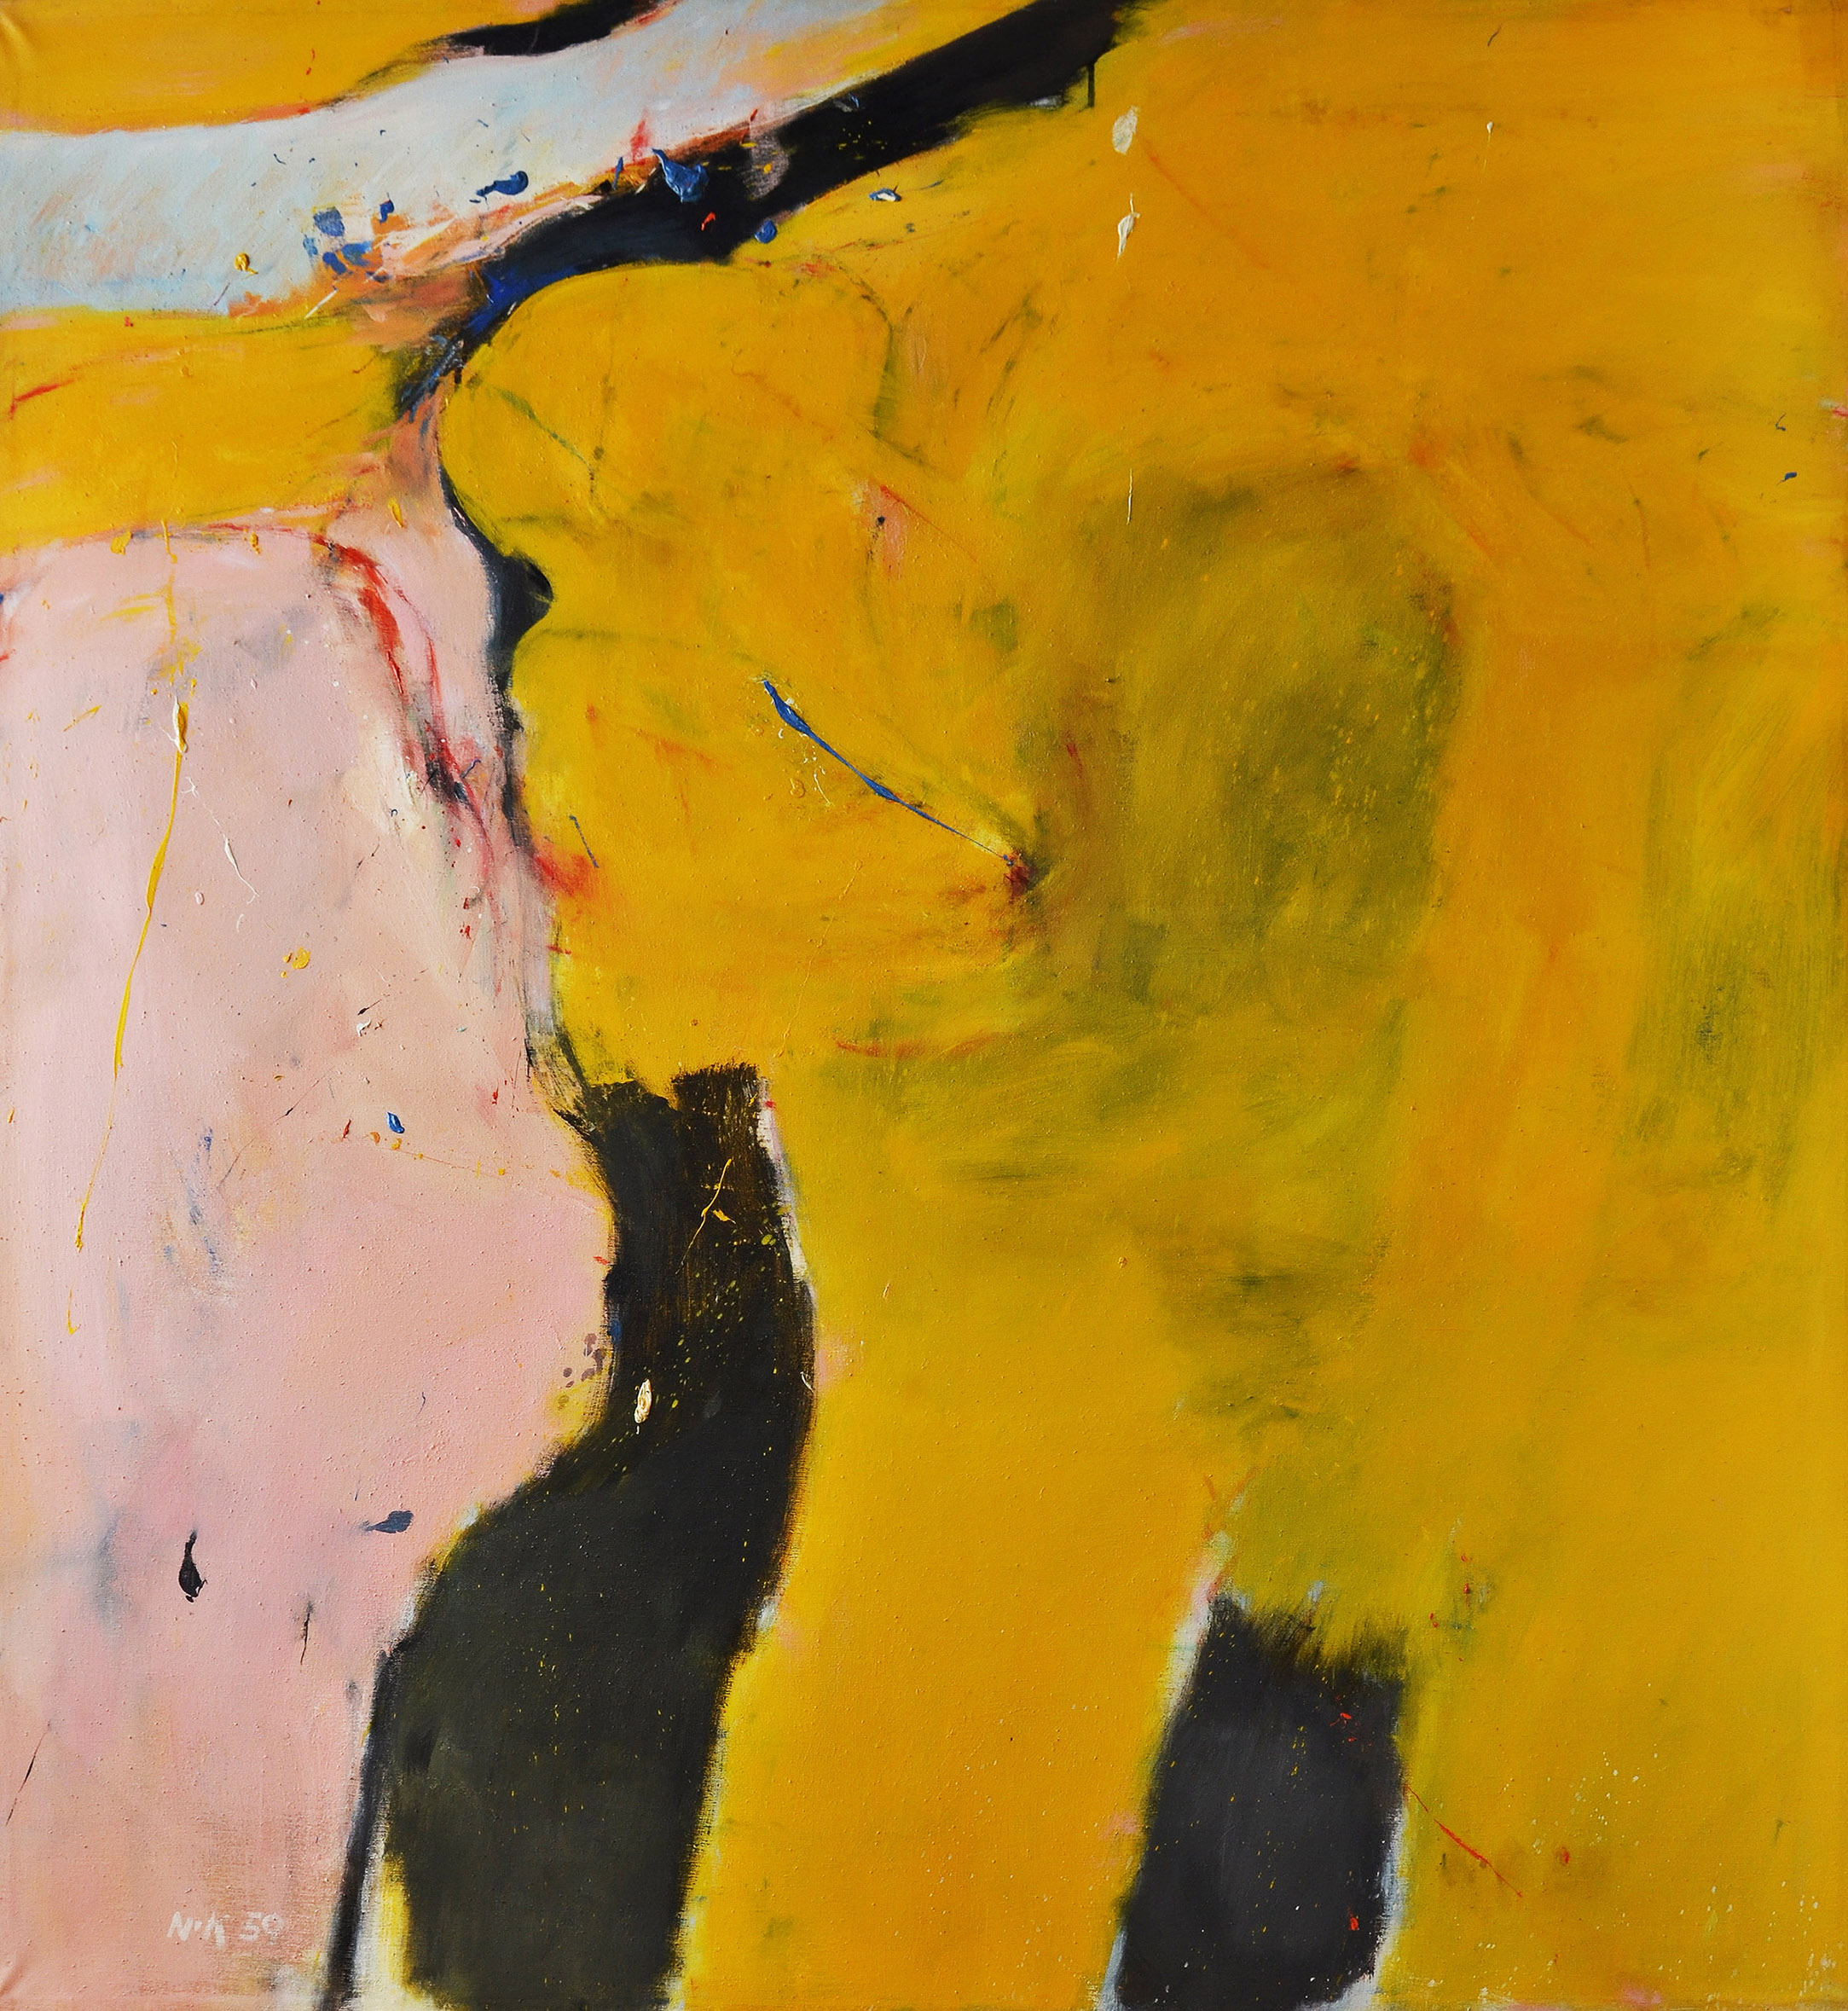 Untitled ,  Oil on canvas, 1959, 68 x 60 inches